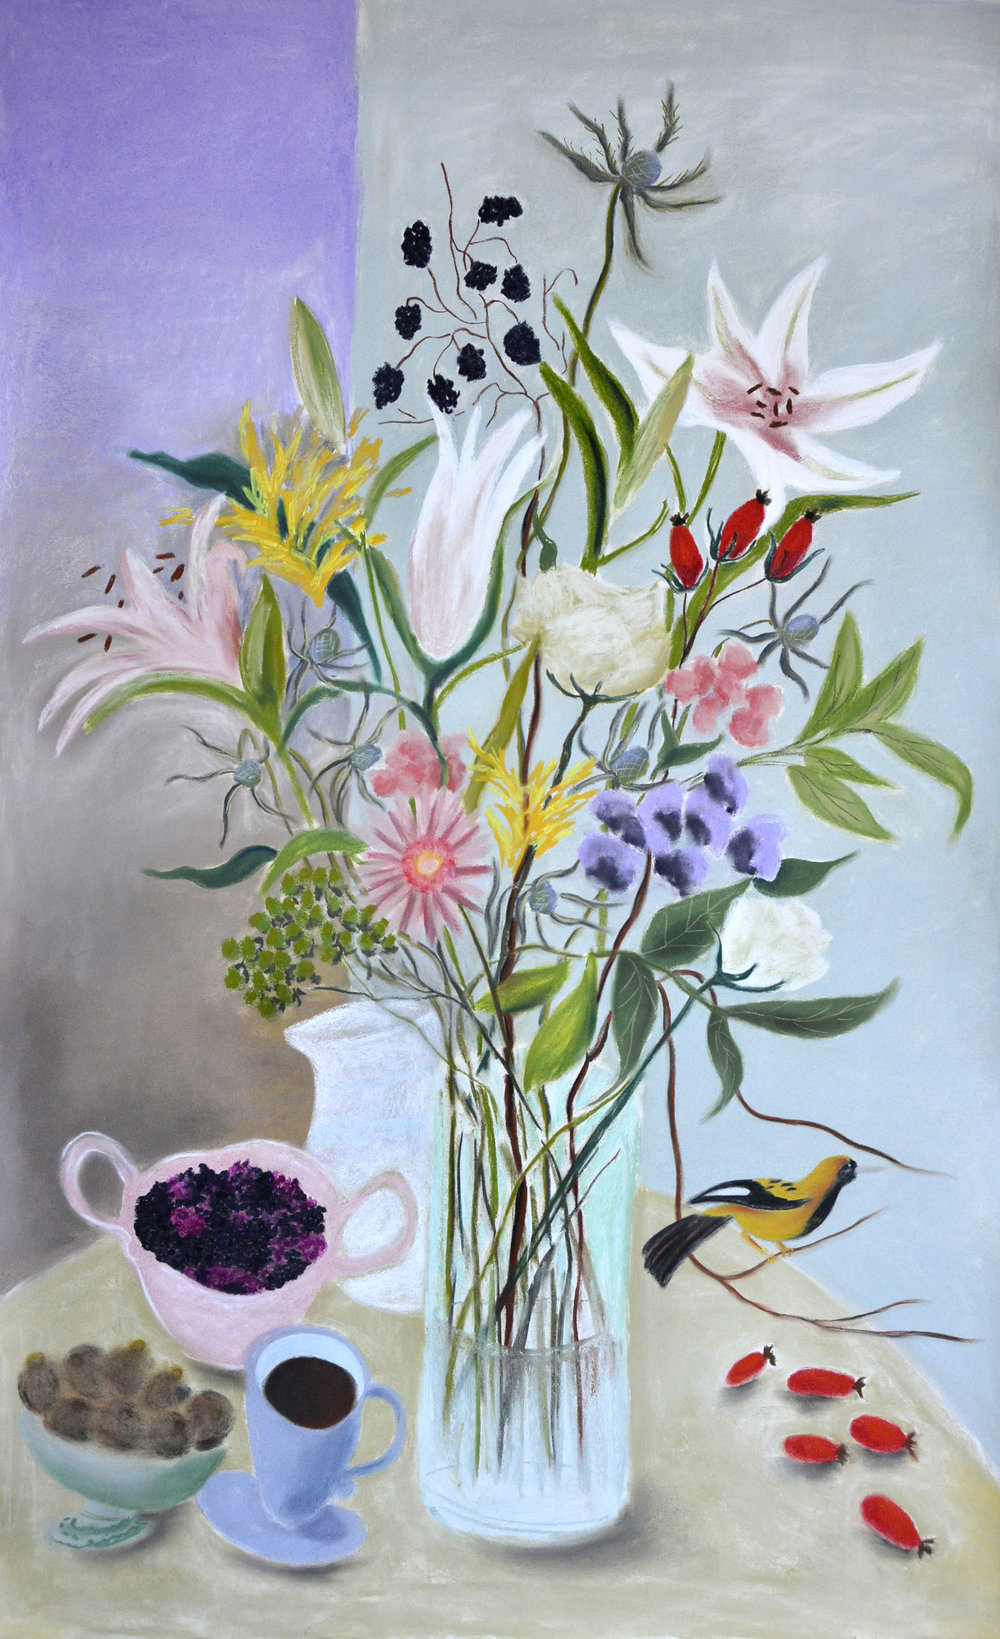 Lillies and Blackberries.jpg